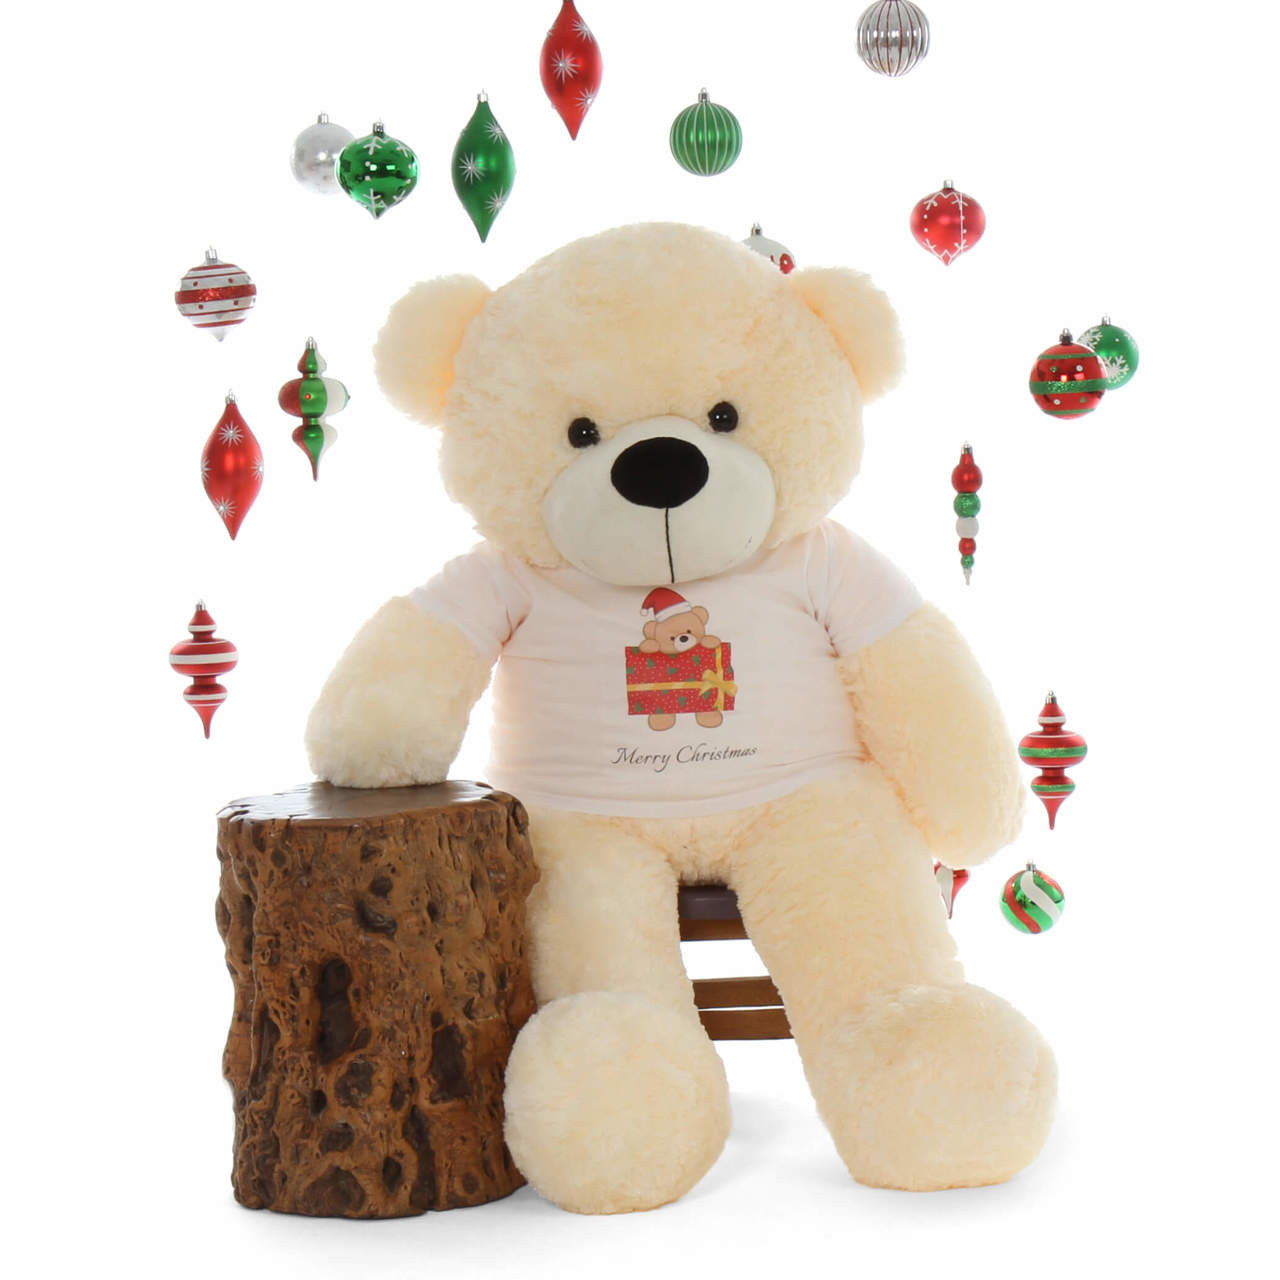 48in most cuddly Merry Christmas  Life Size huggable Cream Teddy Bear Cozy Cuddles